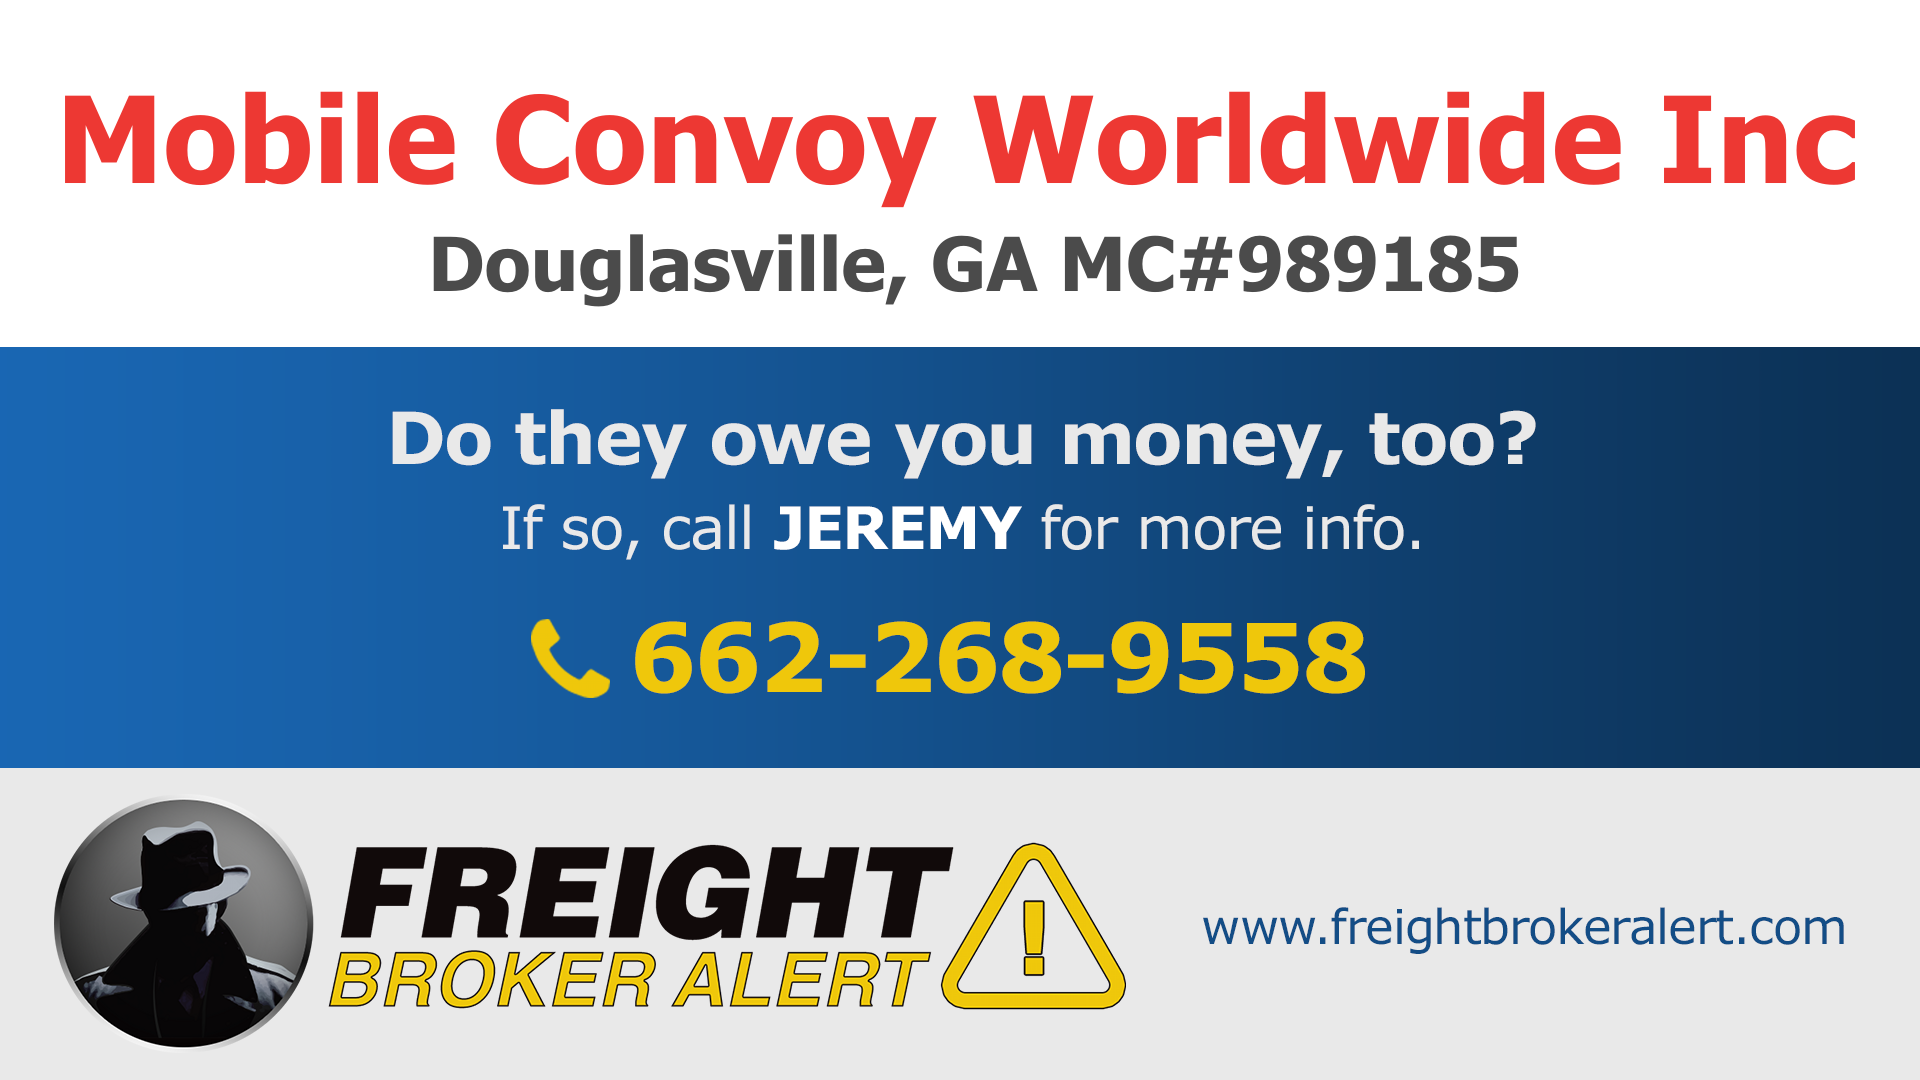 Mobile Convoy Worldwide Inc Georgia